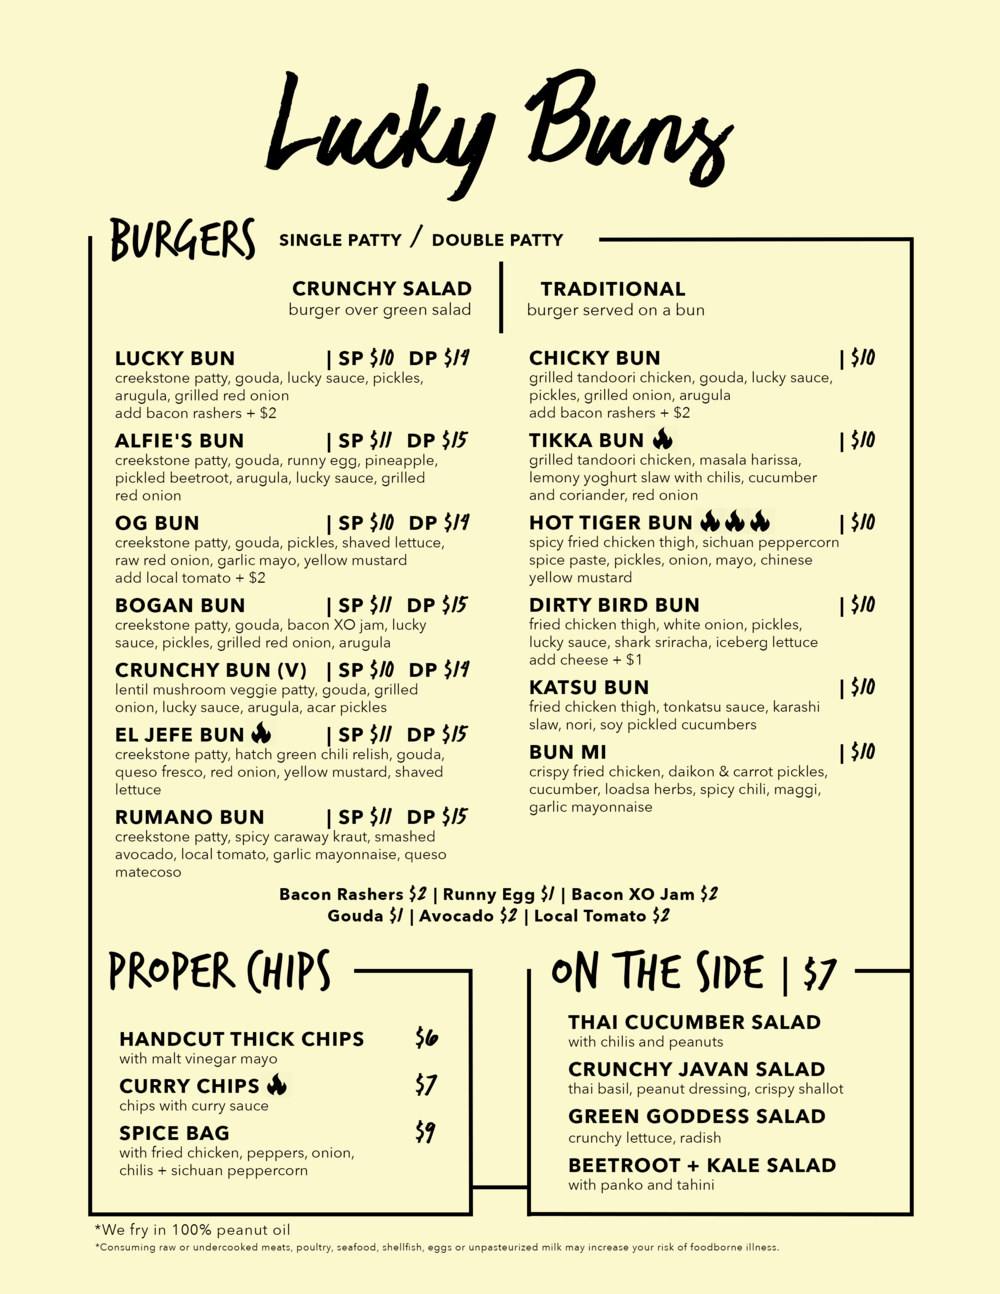 luckybuns_menu_final2018-website.png